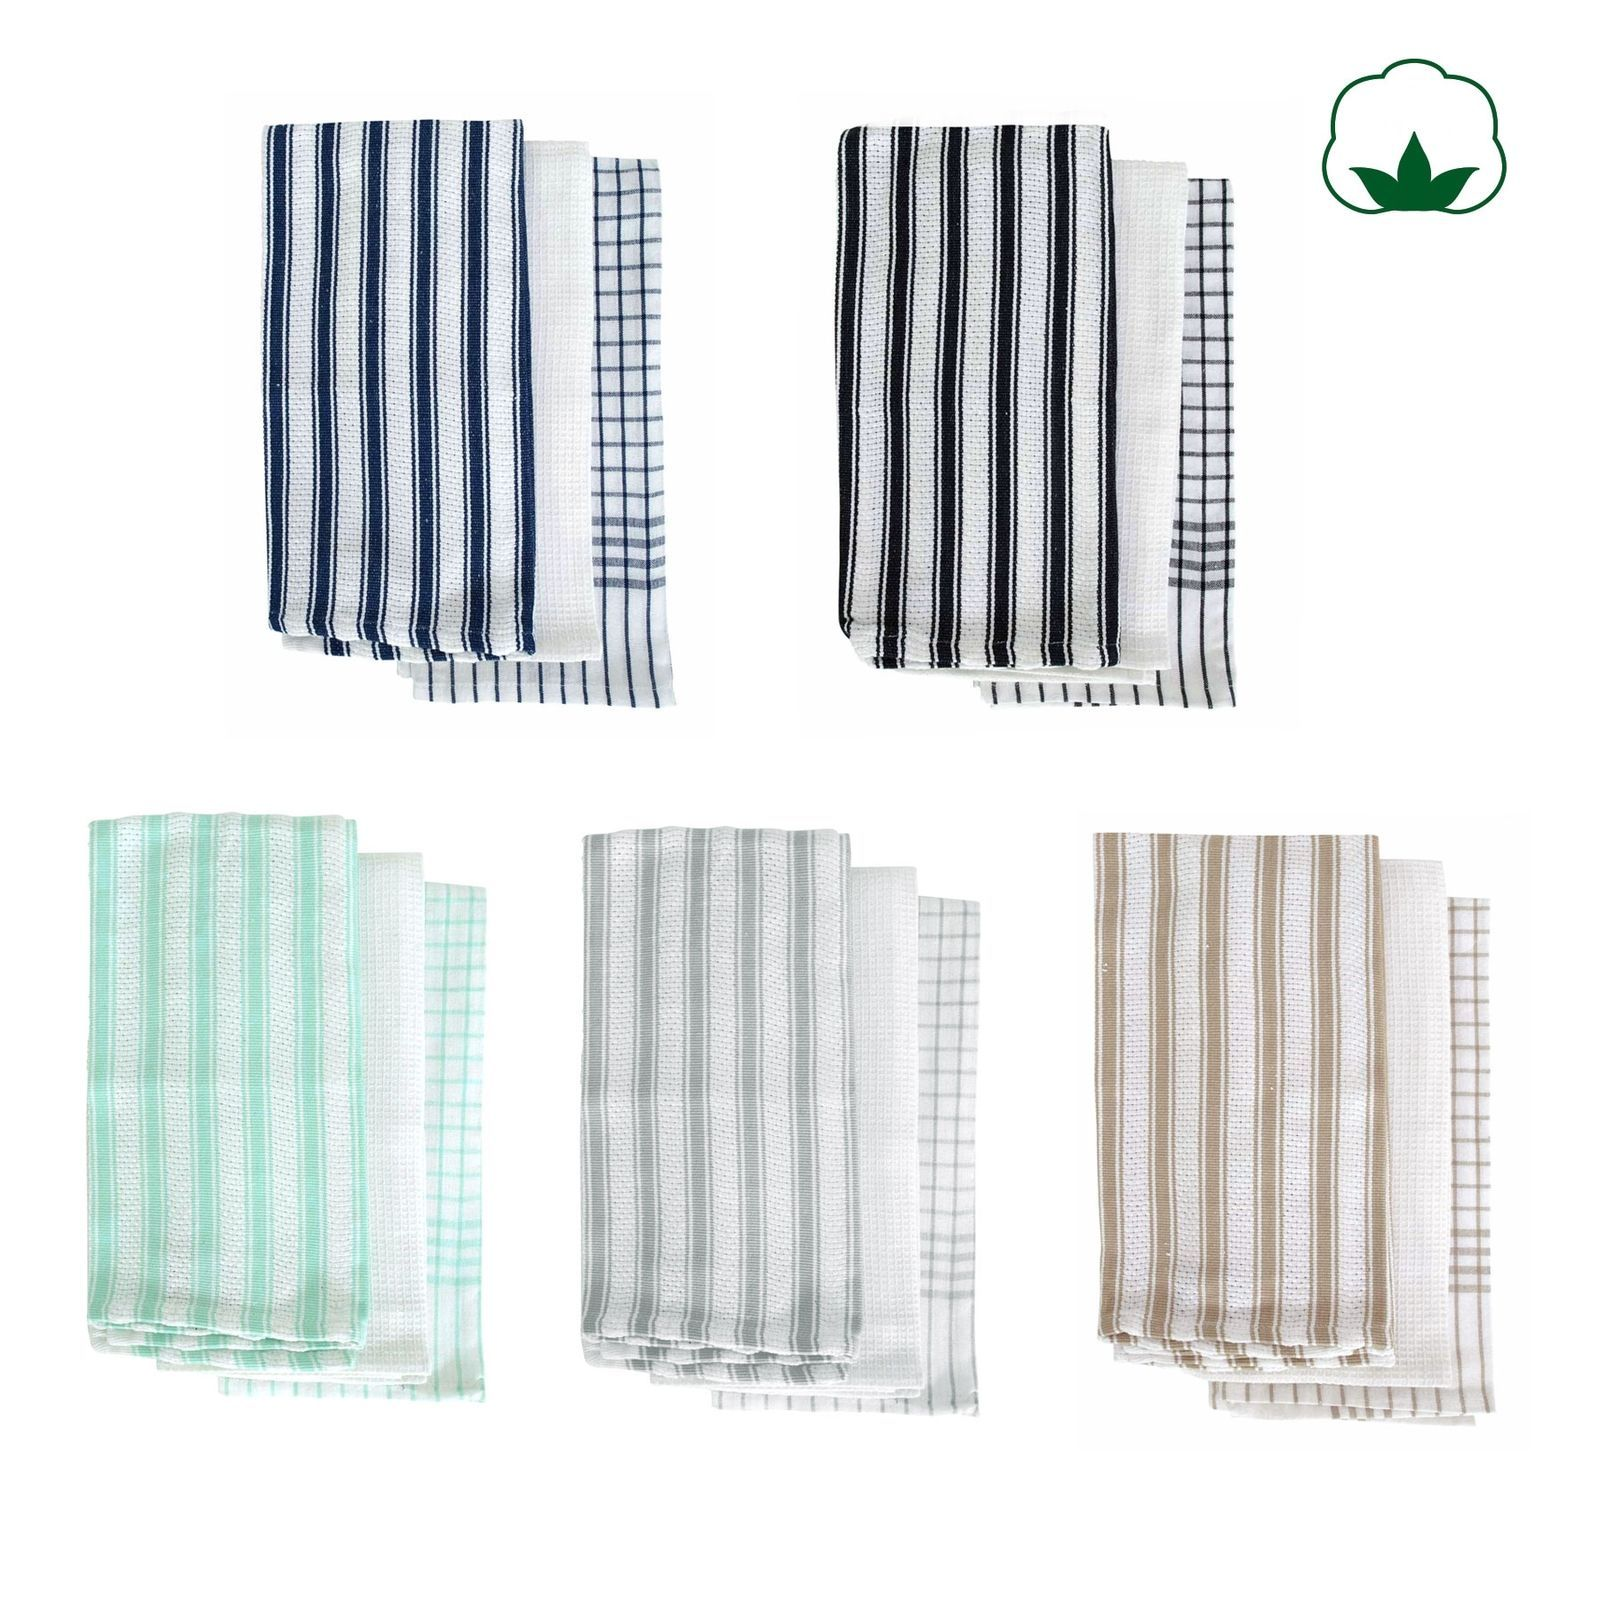 16 15 Aud Set Of 3 Gardenia Cotton Kitchen Cleanning Tea Towels 50x70cm By Idc Homewares Ebay Home Garden Products Tea Towels Dish Drying Mat To